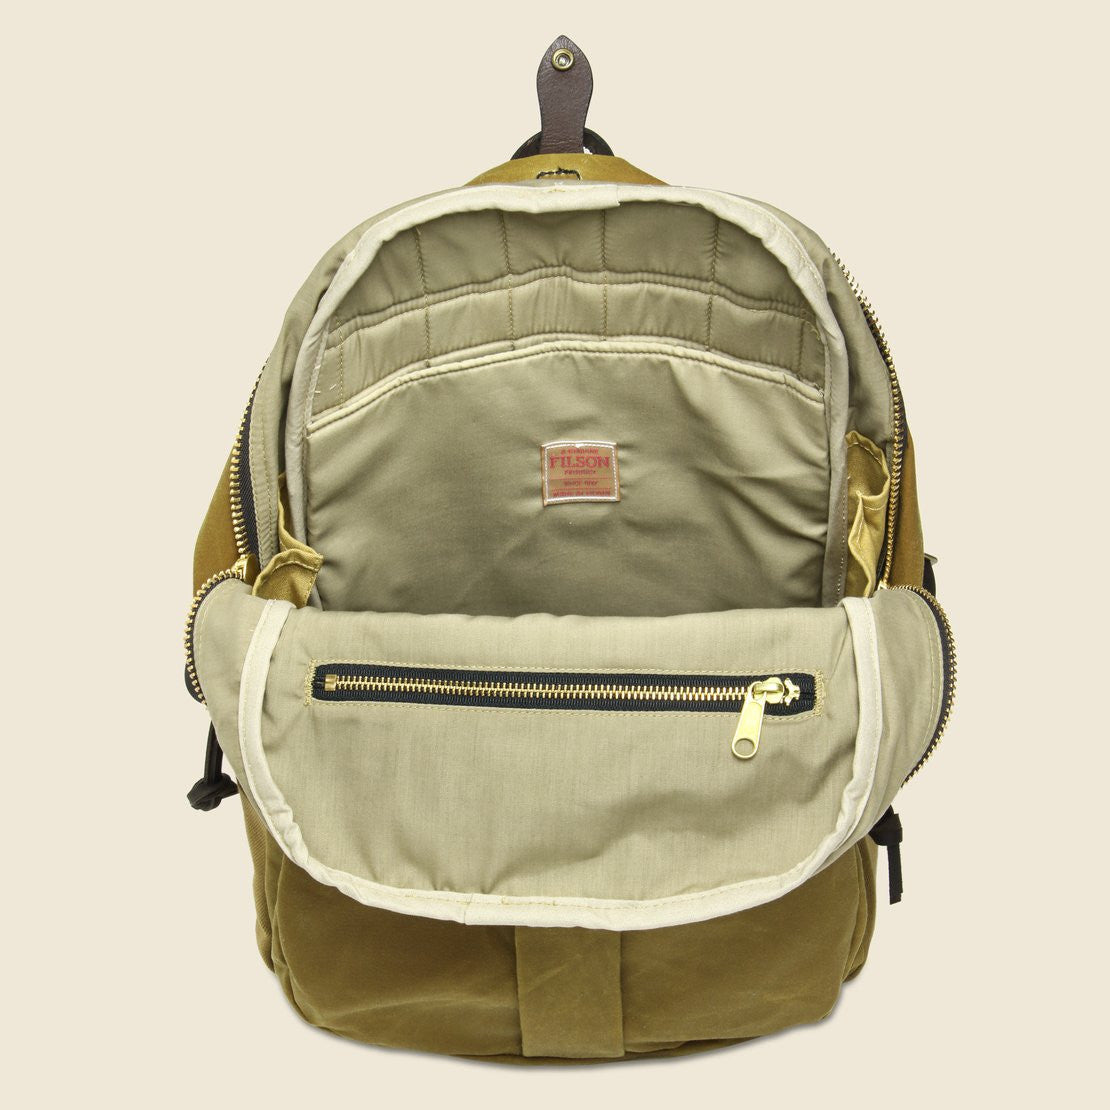 Tin Cloth Journeyman Backpack - Tan - Filson - STAG Provisions - Accessories - Bags / Luggage